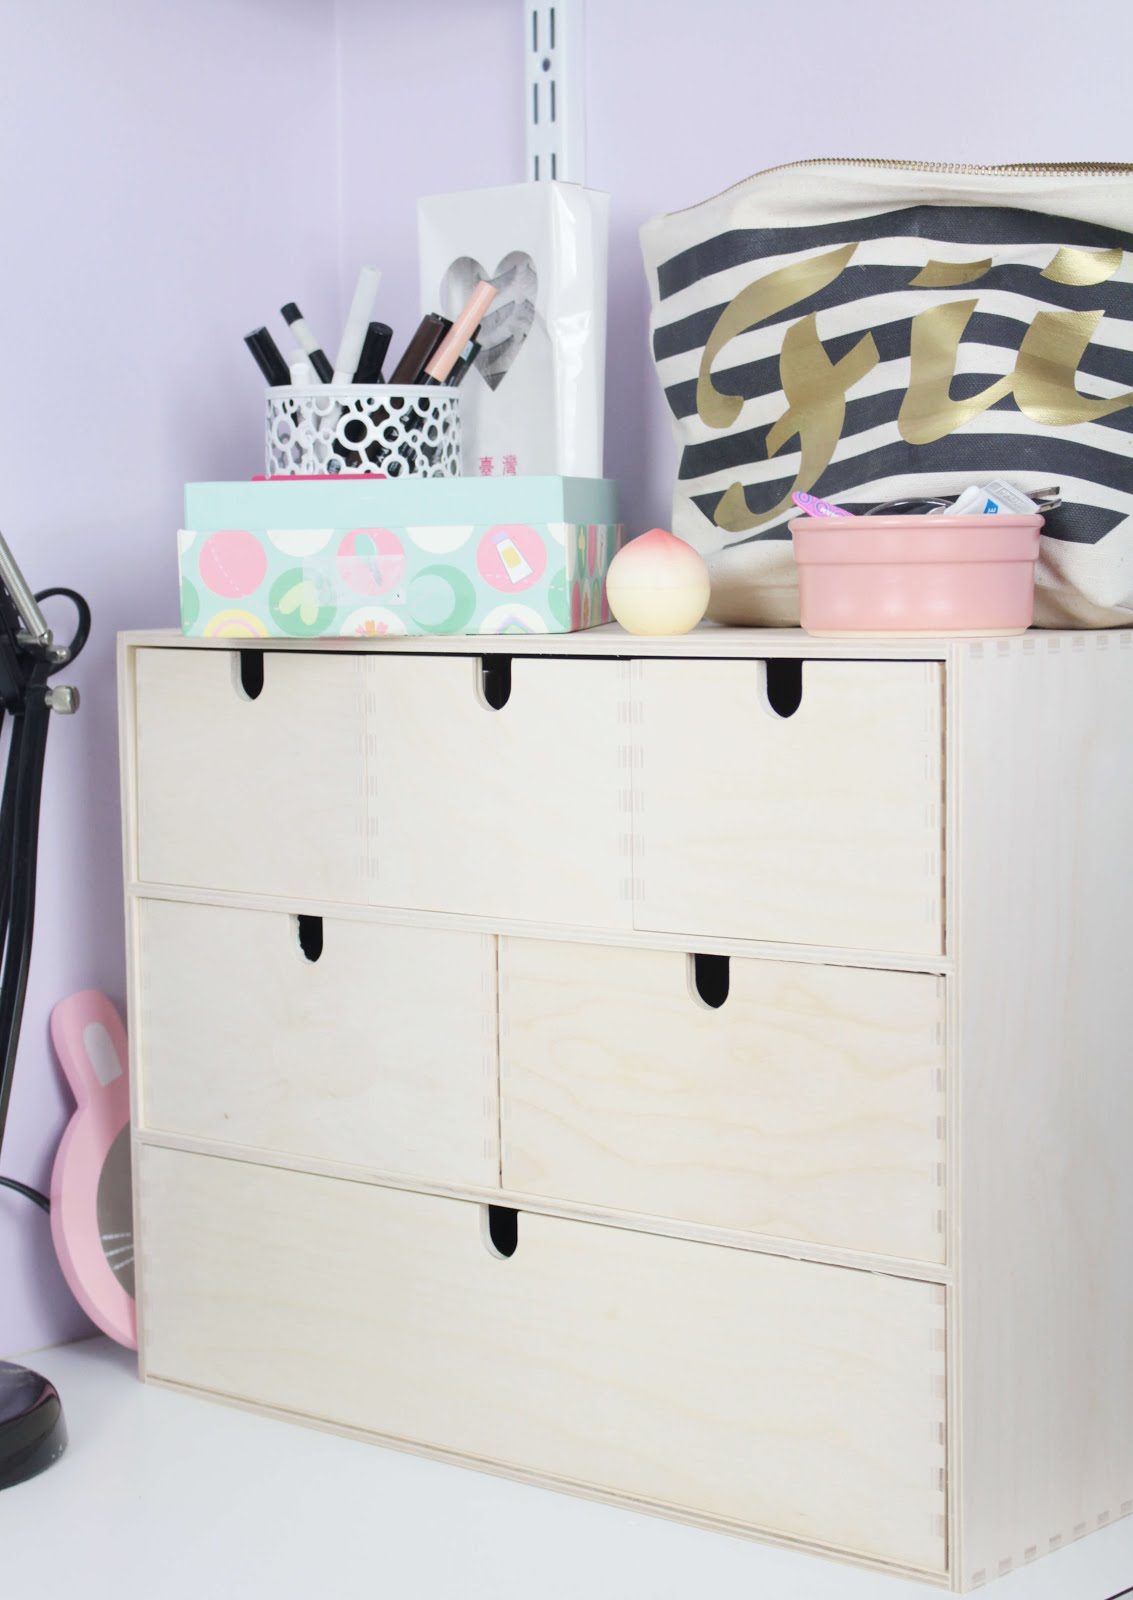 How I Store My Makeup Ikea Moppe Drawers Little Miss Fii